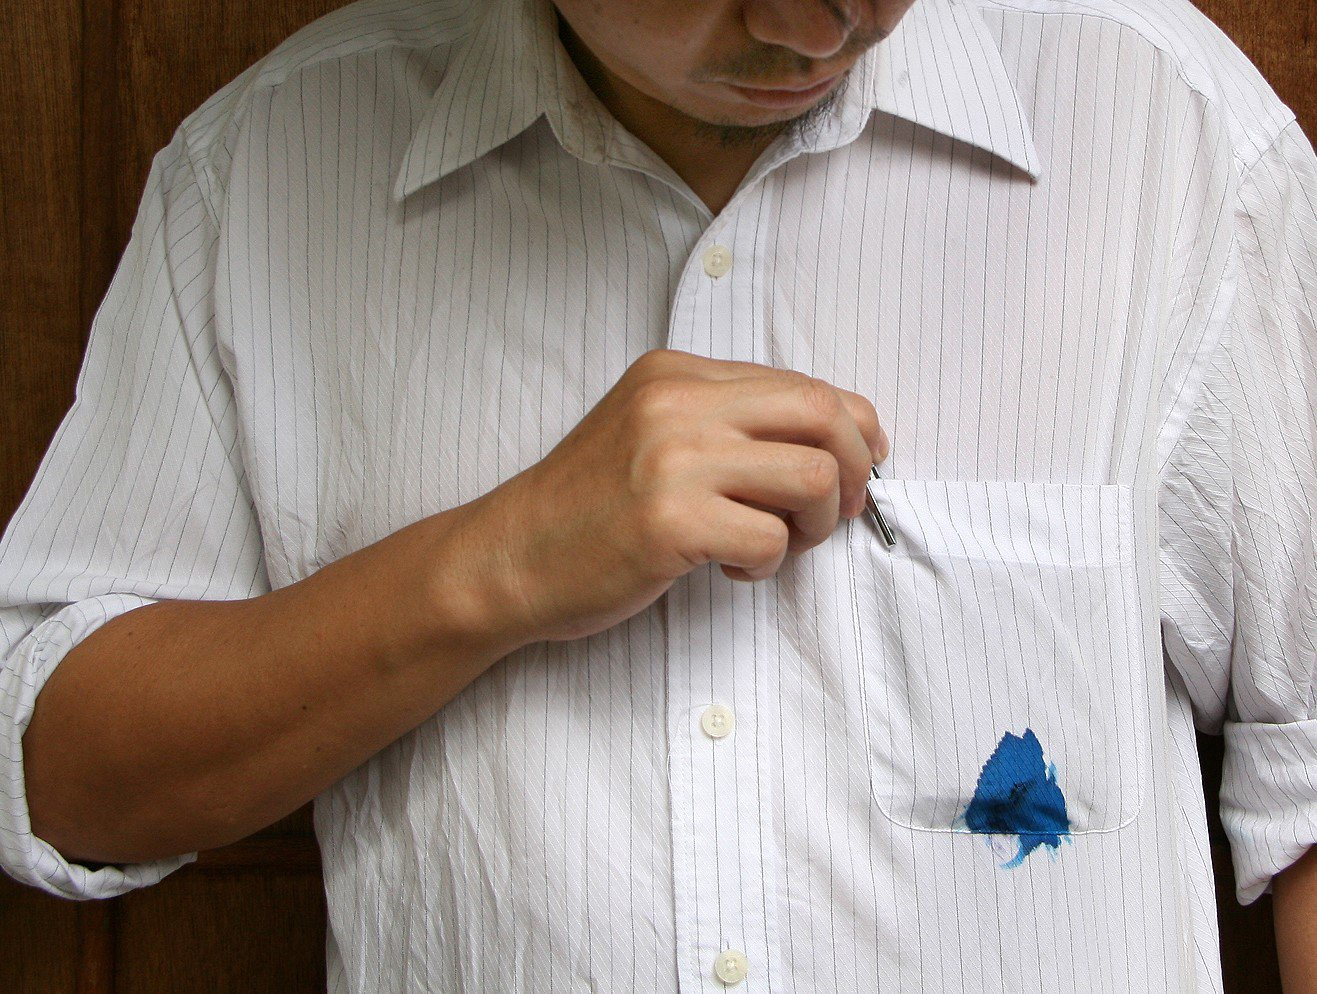 Ever wondered why ballpoint pens leak inside your pockets for Remove pen stain from shirt